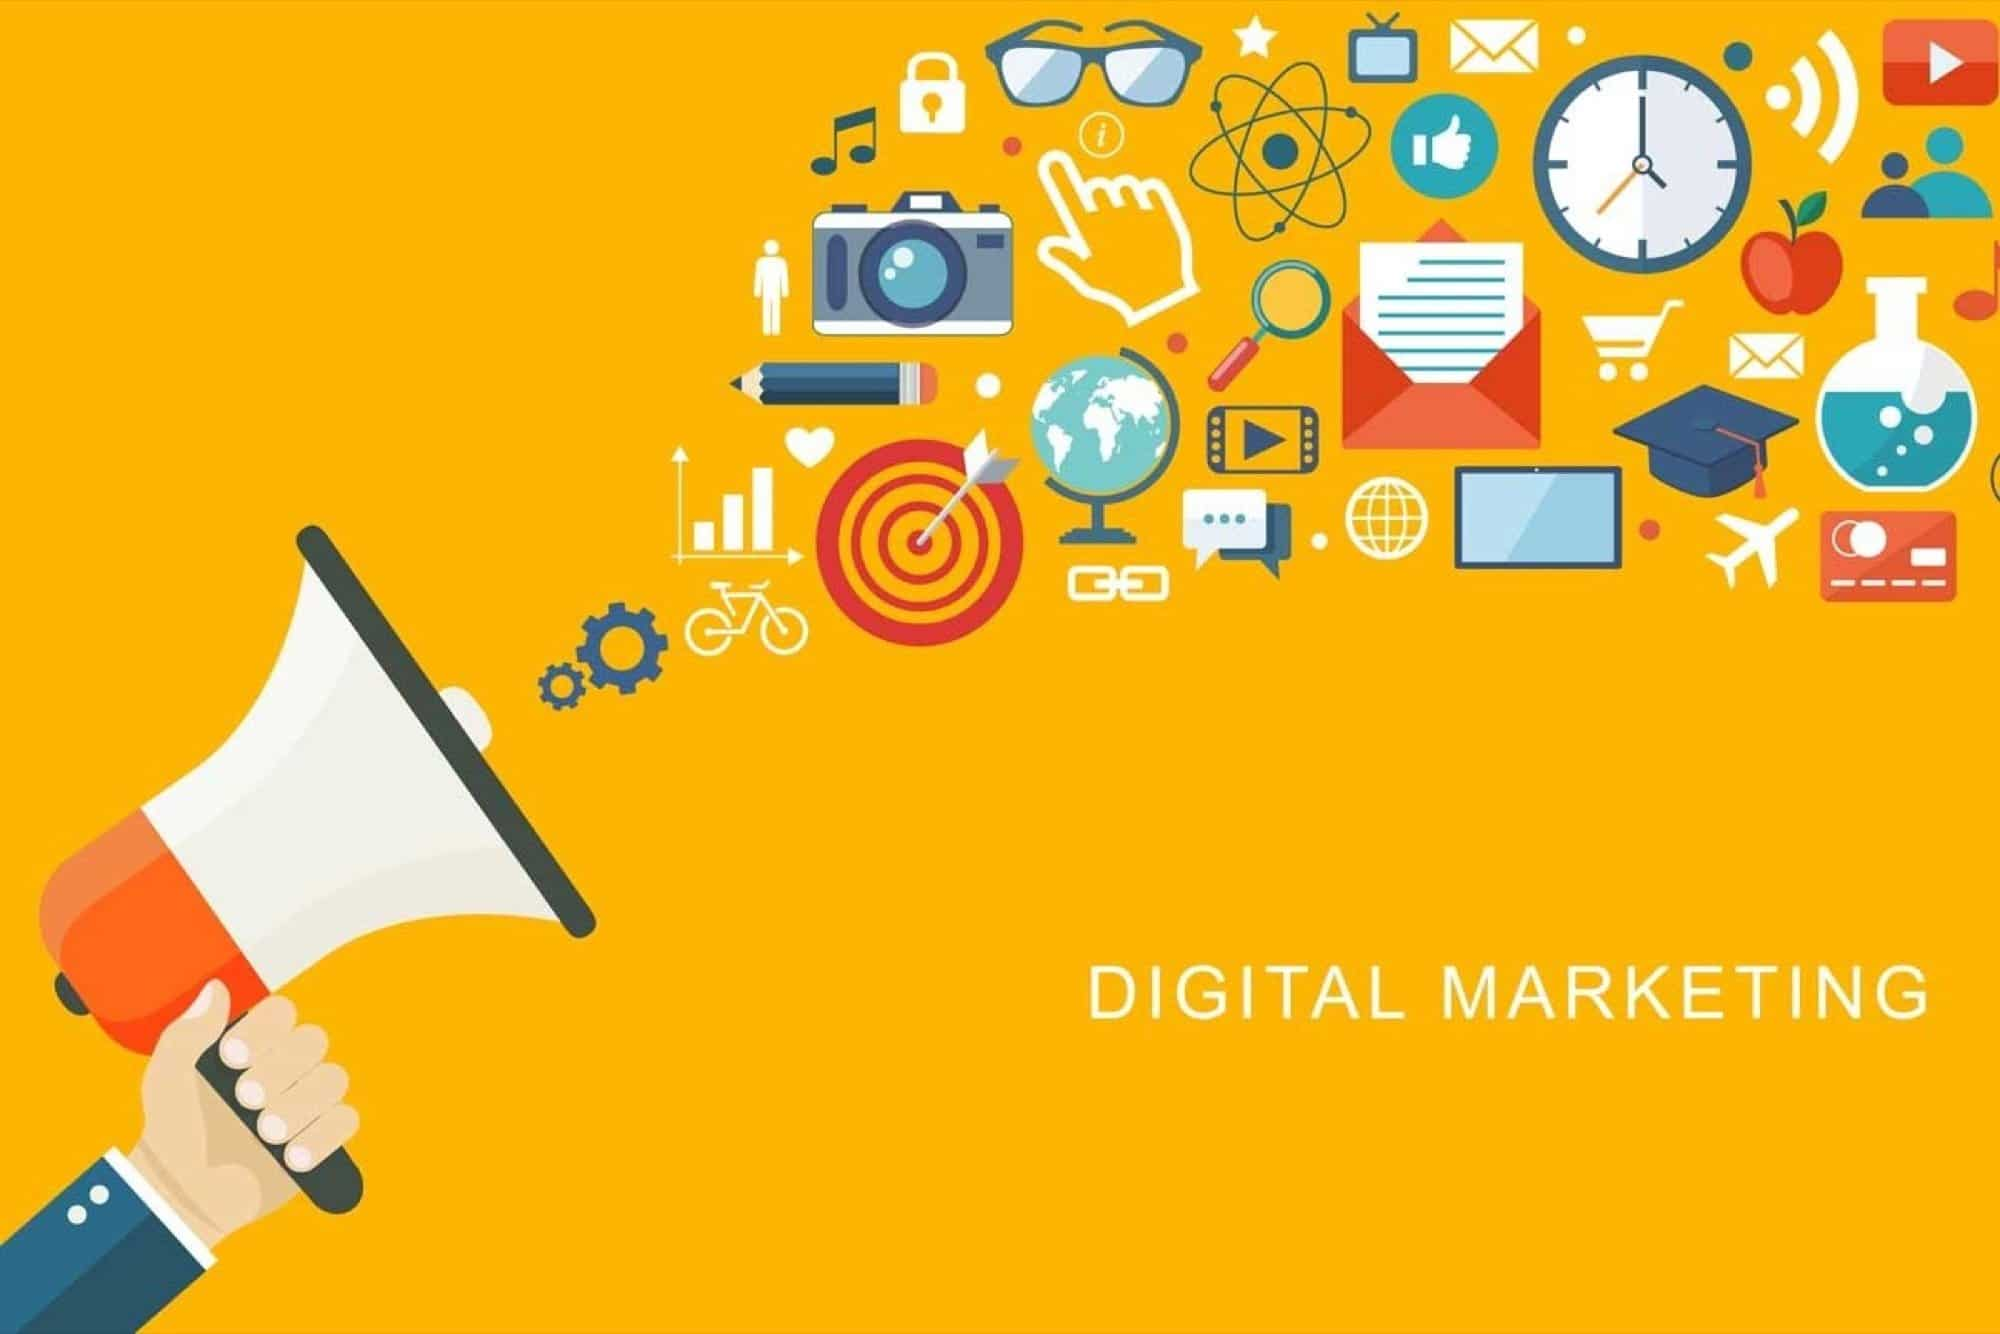 Online Marketing West Amwell Township